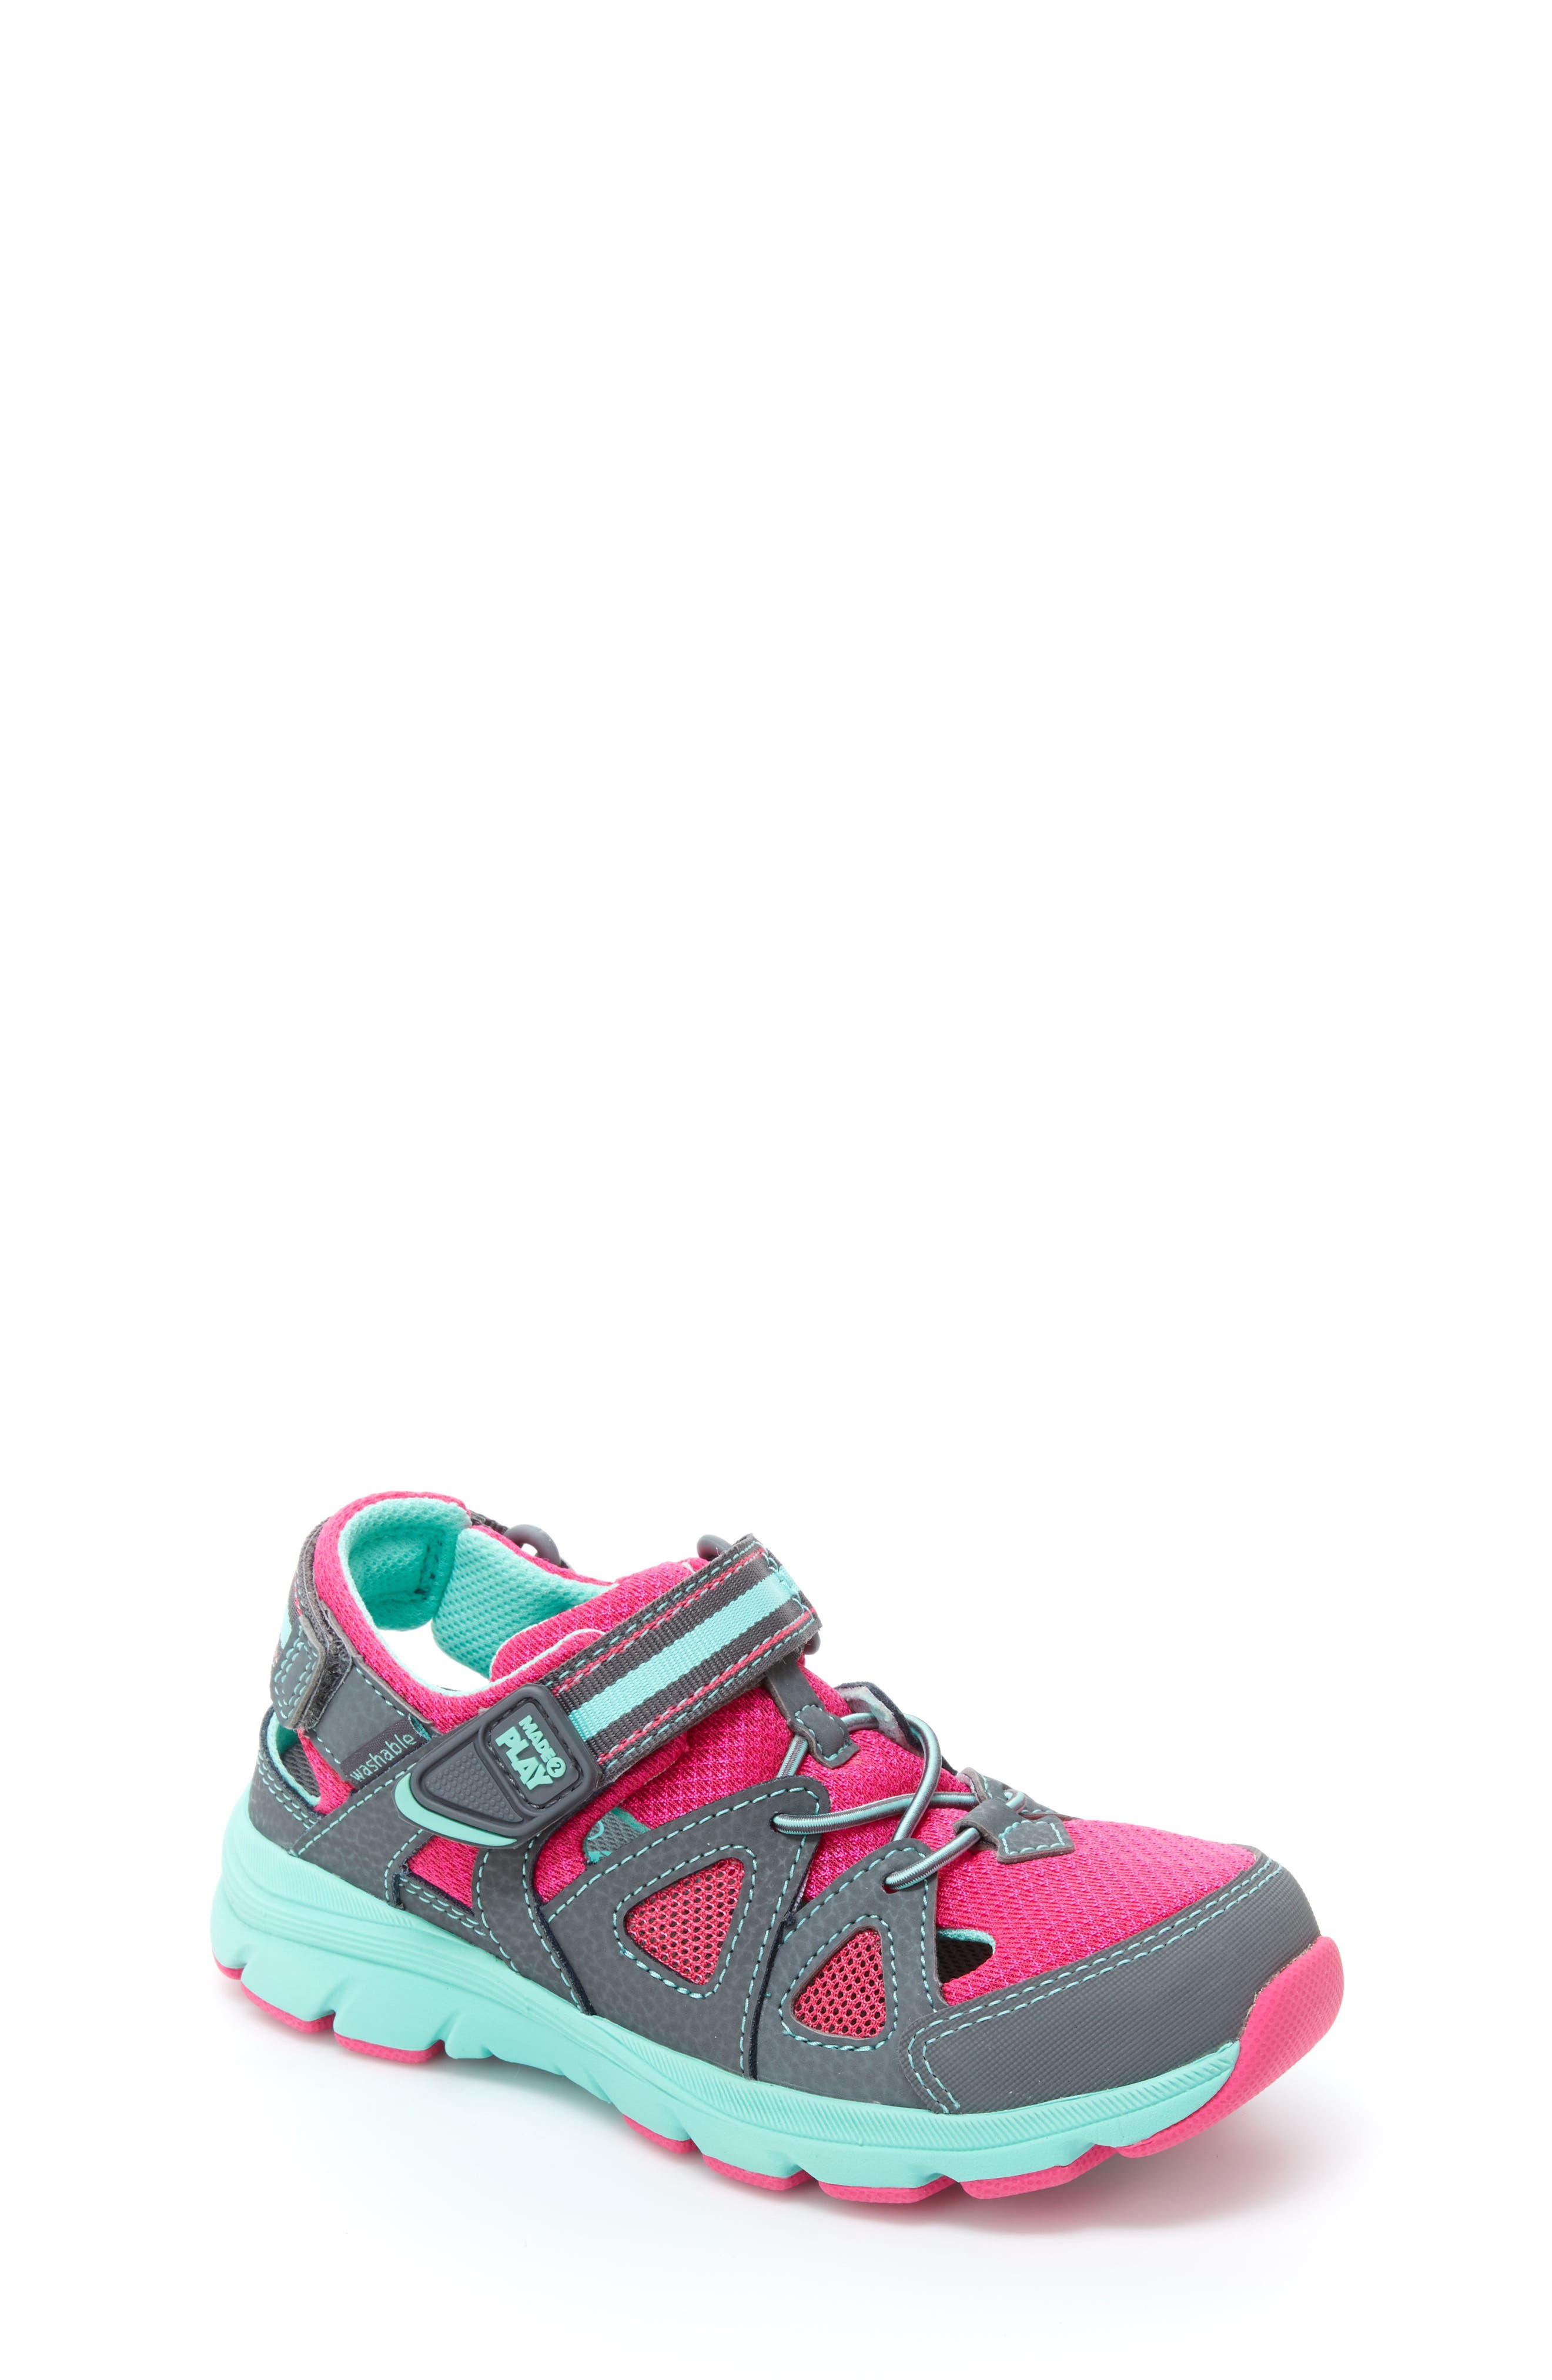 Made2Play<sup>®</sup> Ryder Washable Sneaker,                             Main thumbnail 1, color,                             020